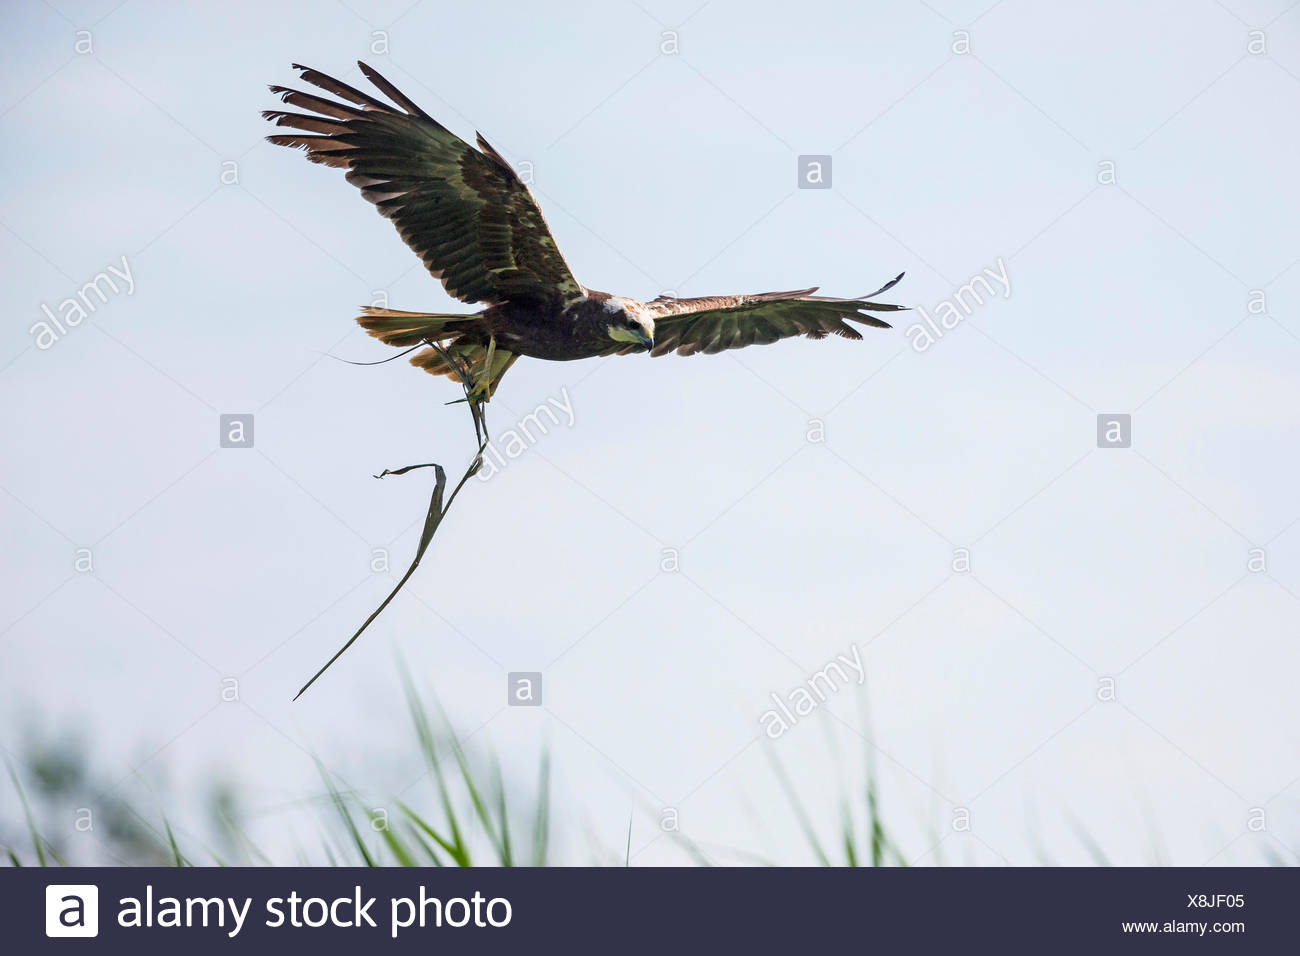 Western Marsh Harrier (Circus aeruginosus), female flying with reed in the clutches, Germany, Bavaria, Oberbayern, Upper Bavaria - Stock Image